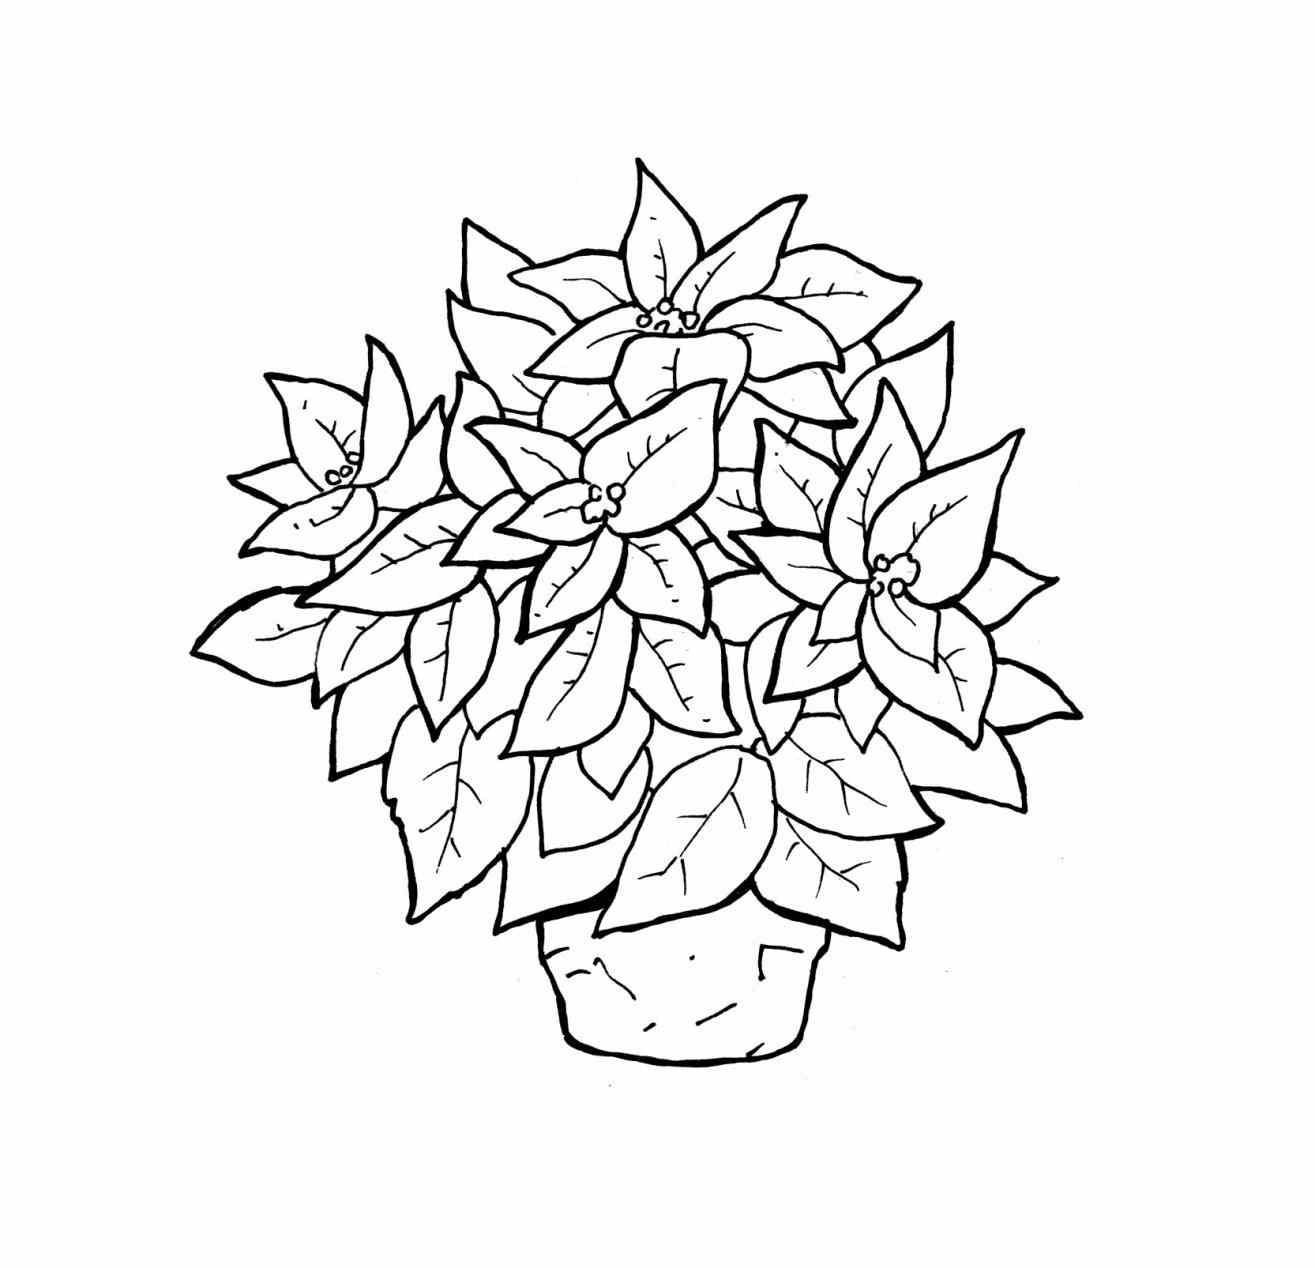 1315x1268 Poinsettia Coloring Pages Printable For Kids With Free Adult Free